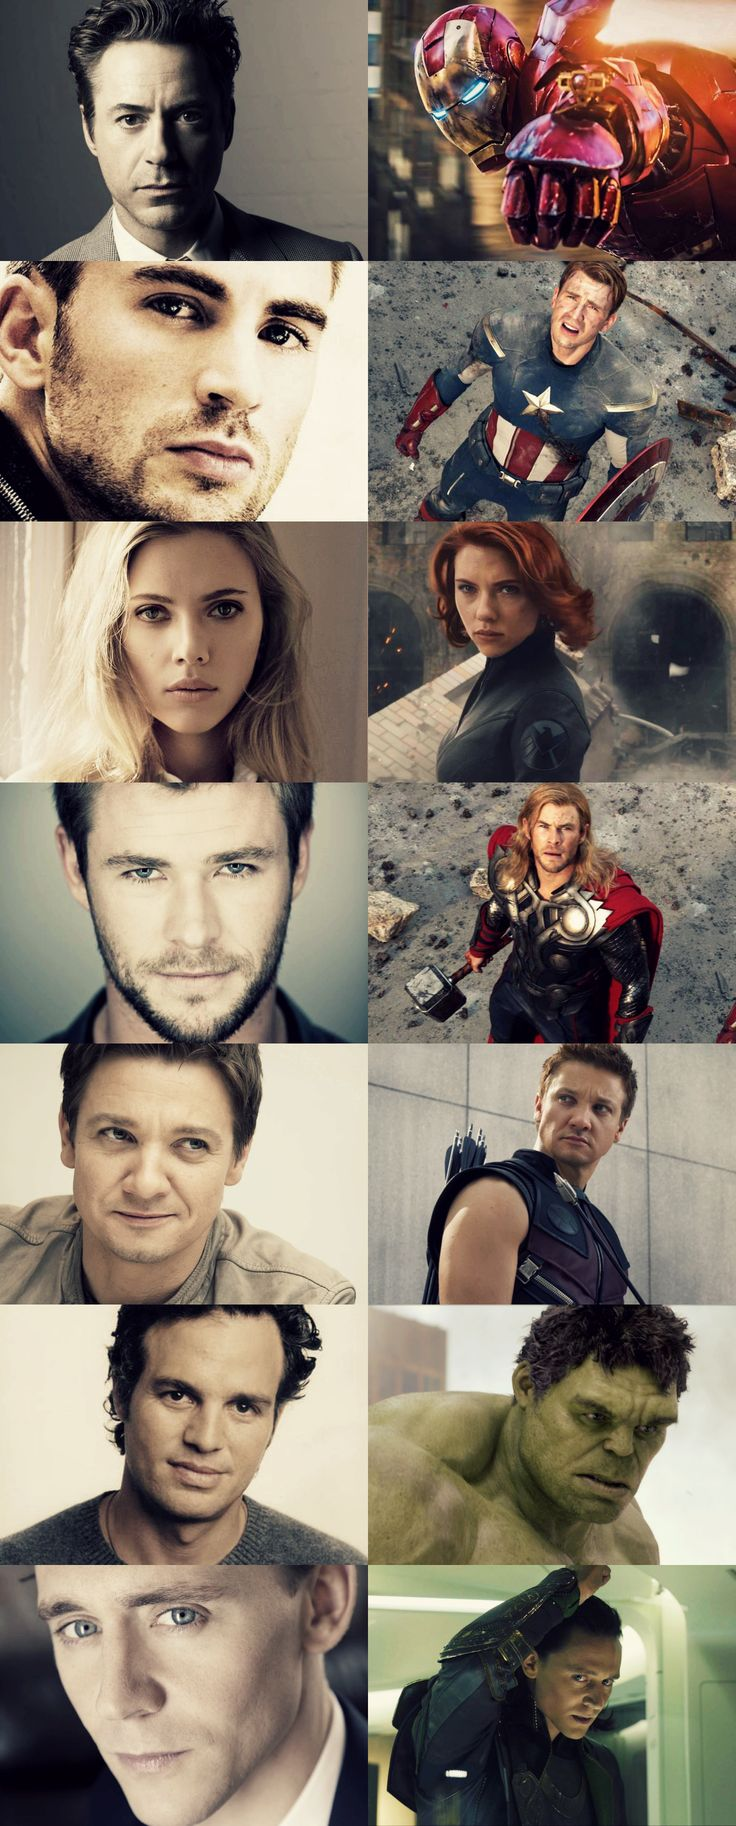 Robert Downey Jr, Chris Evans, Scarlett Johansson, Chris Hemsworth, Jeremy Renner, Mark Ruffalo, Tom Hiddleston ☺